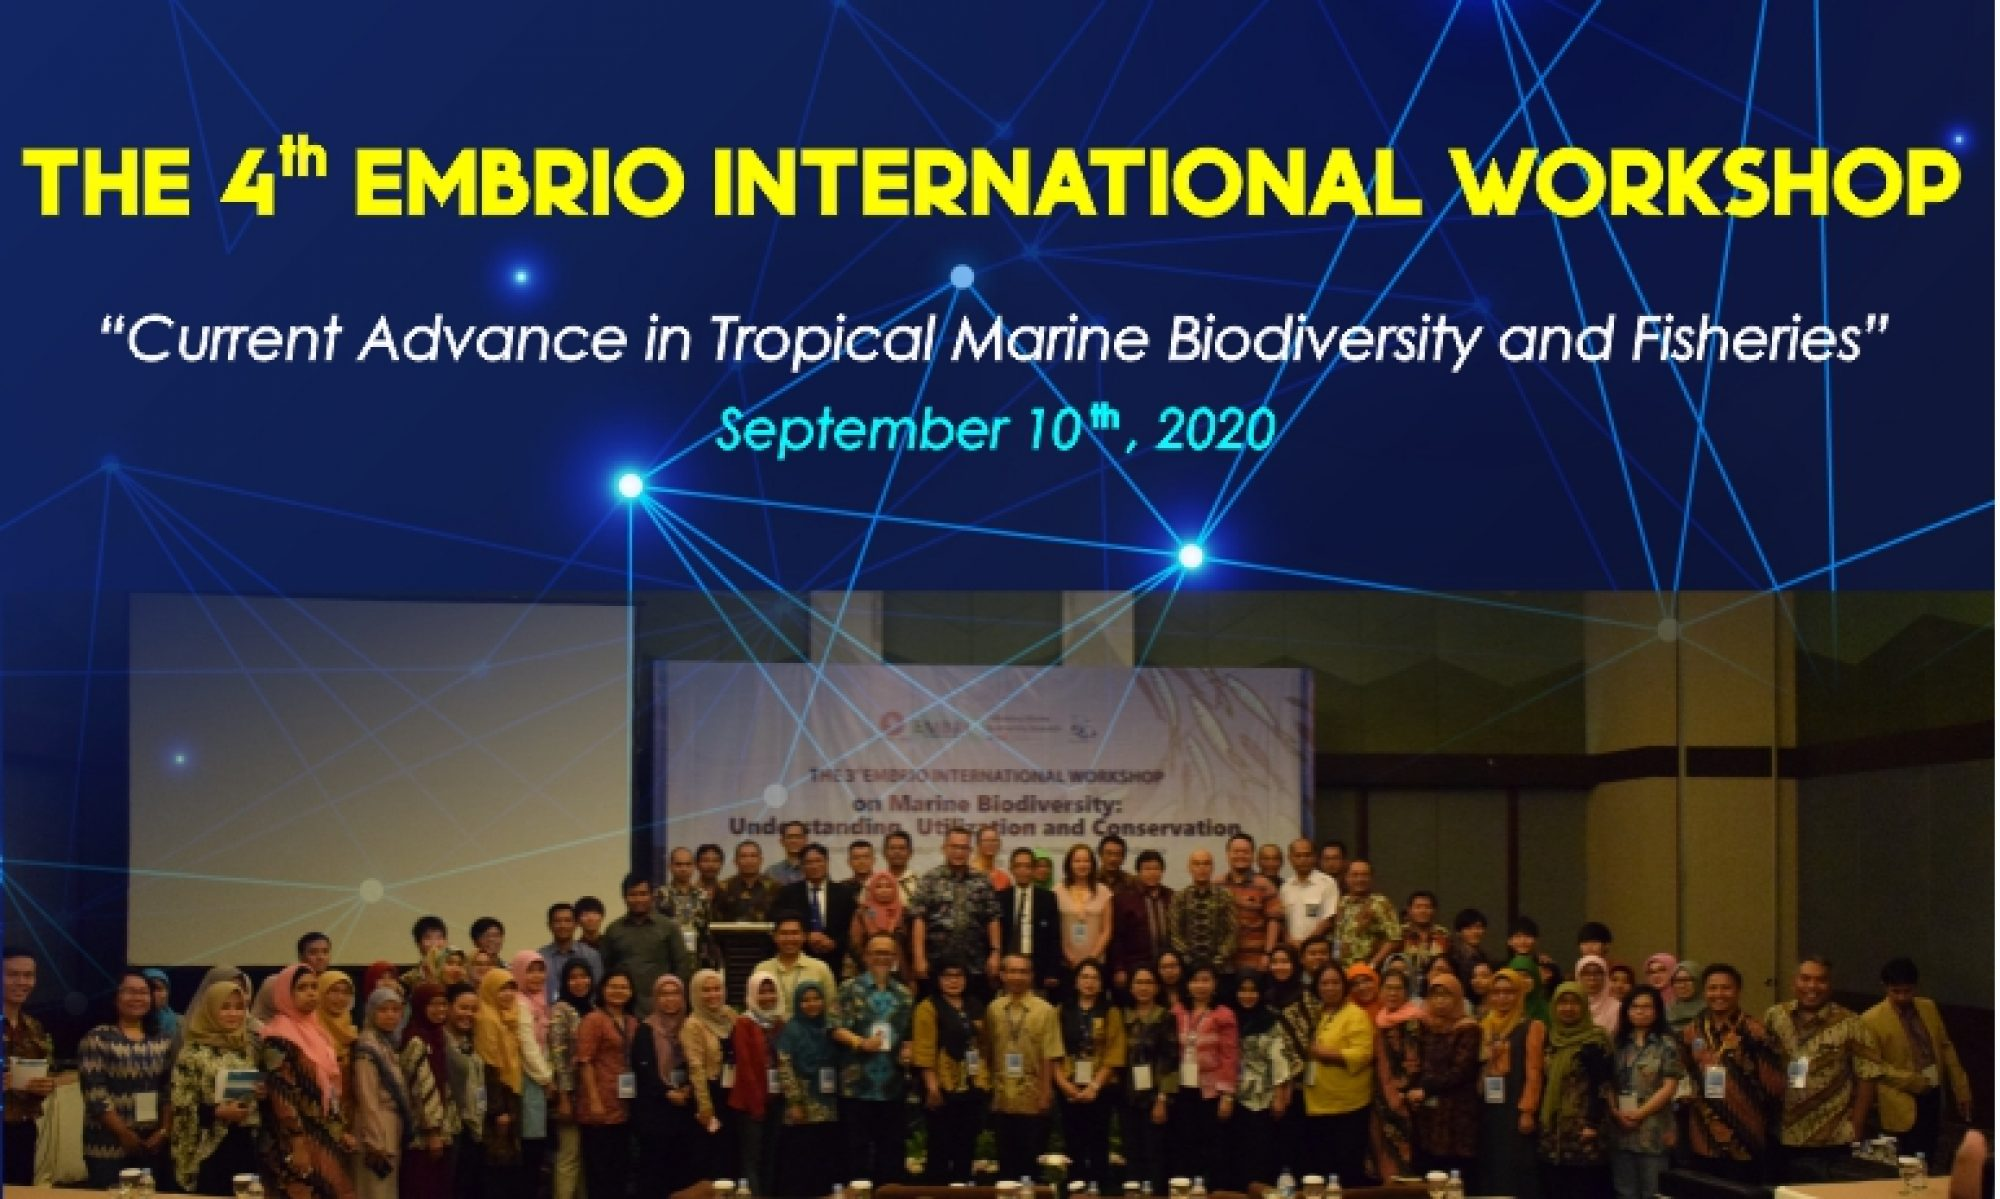 THE 4th EMBRIO INTERNATIONAL WORKSHOP